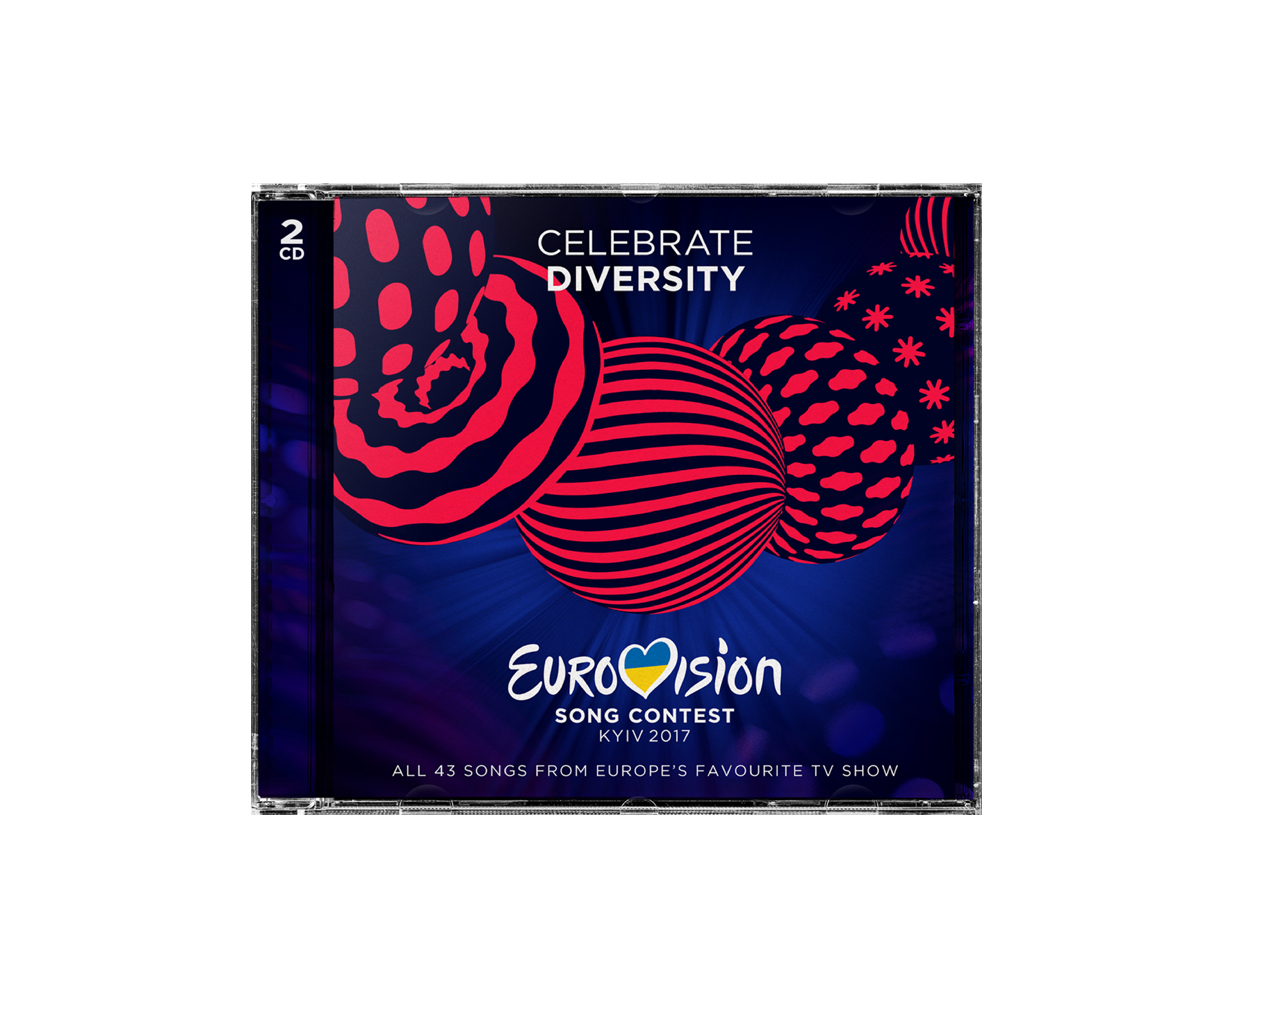 THE OFFICIAL EUROVISION SONG CONTEST CD 2017